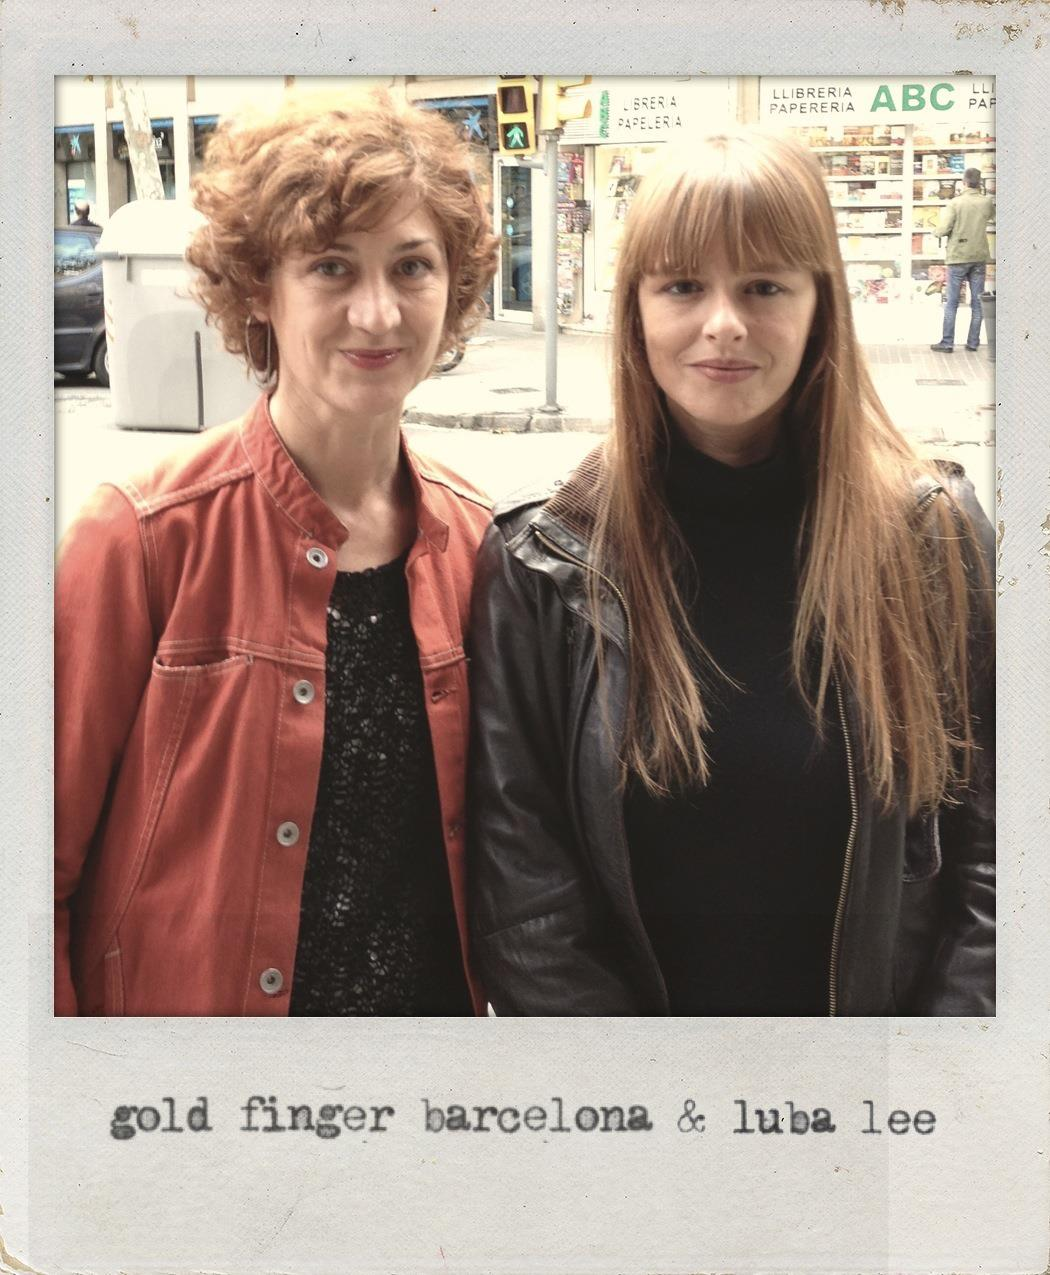 Gold Finger Barcelona & luba lee